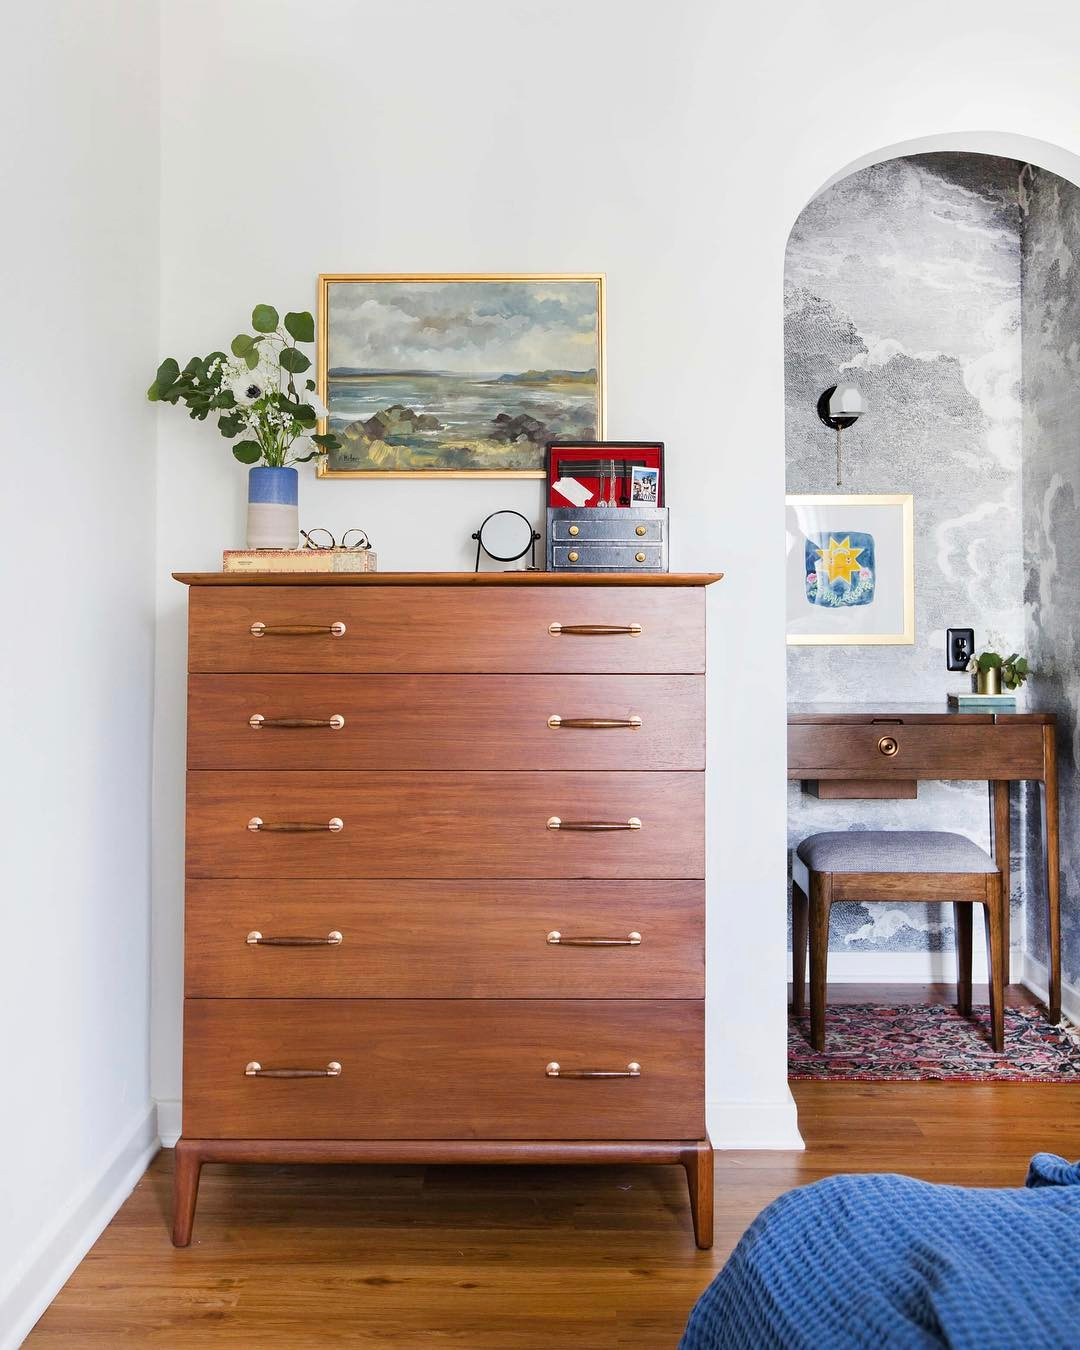 @hellosaratrampinteriors midcentury modern dresser with framed paintings and eucalyptus